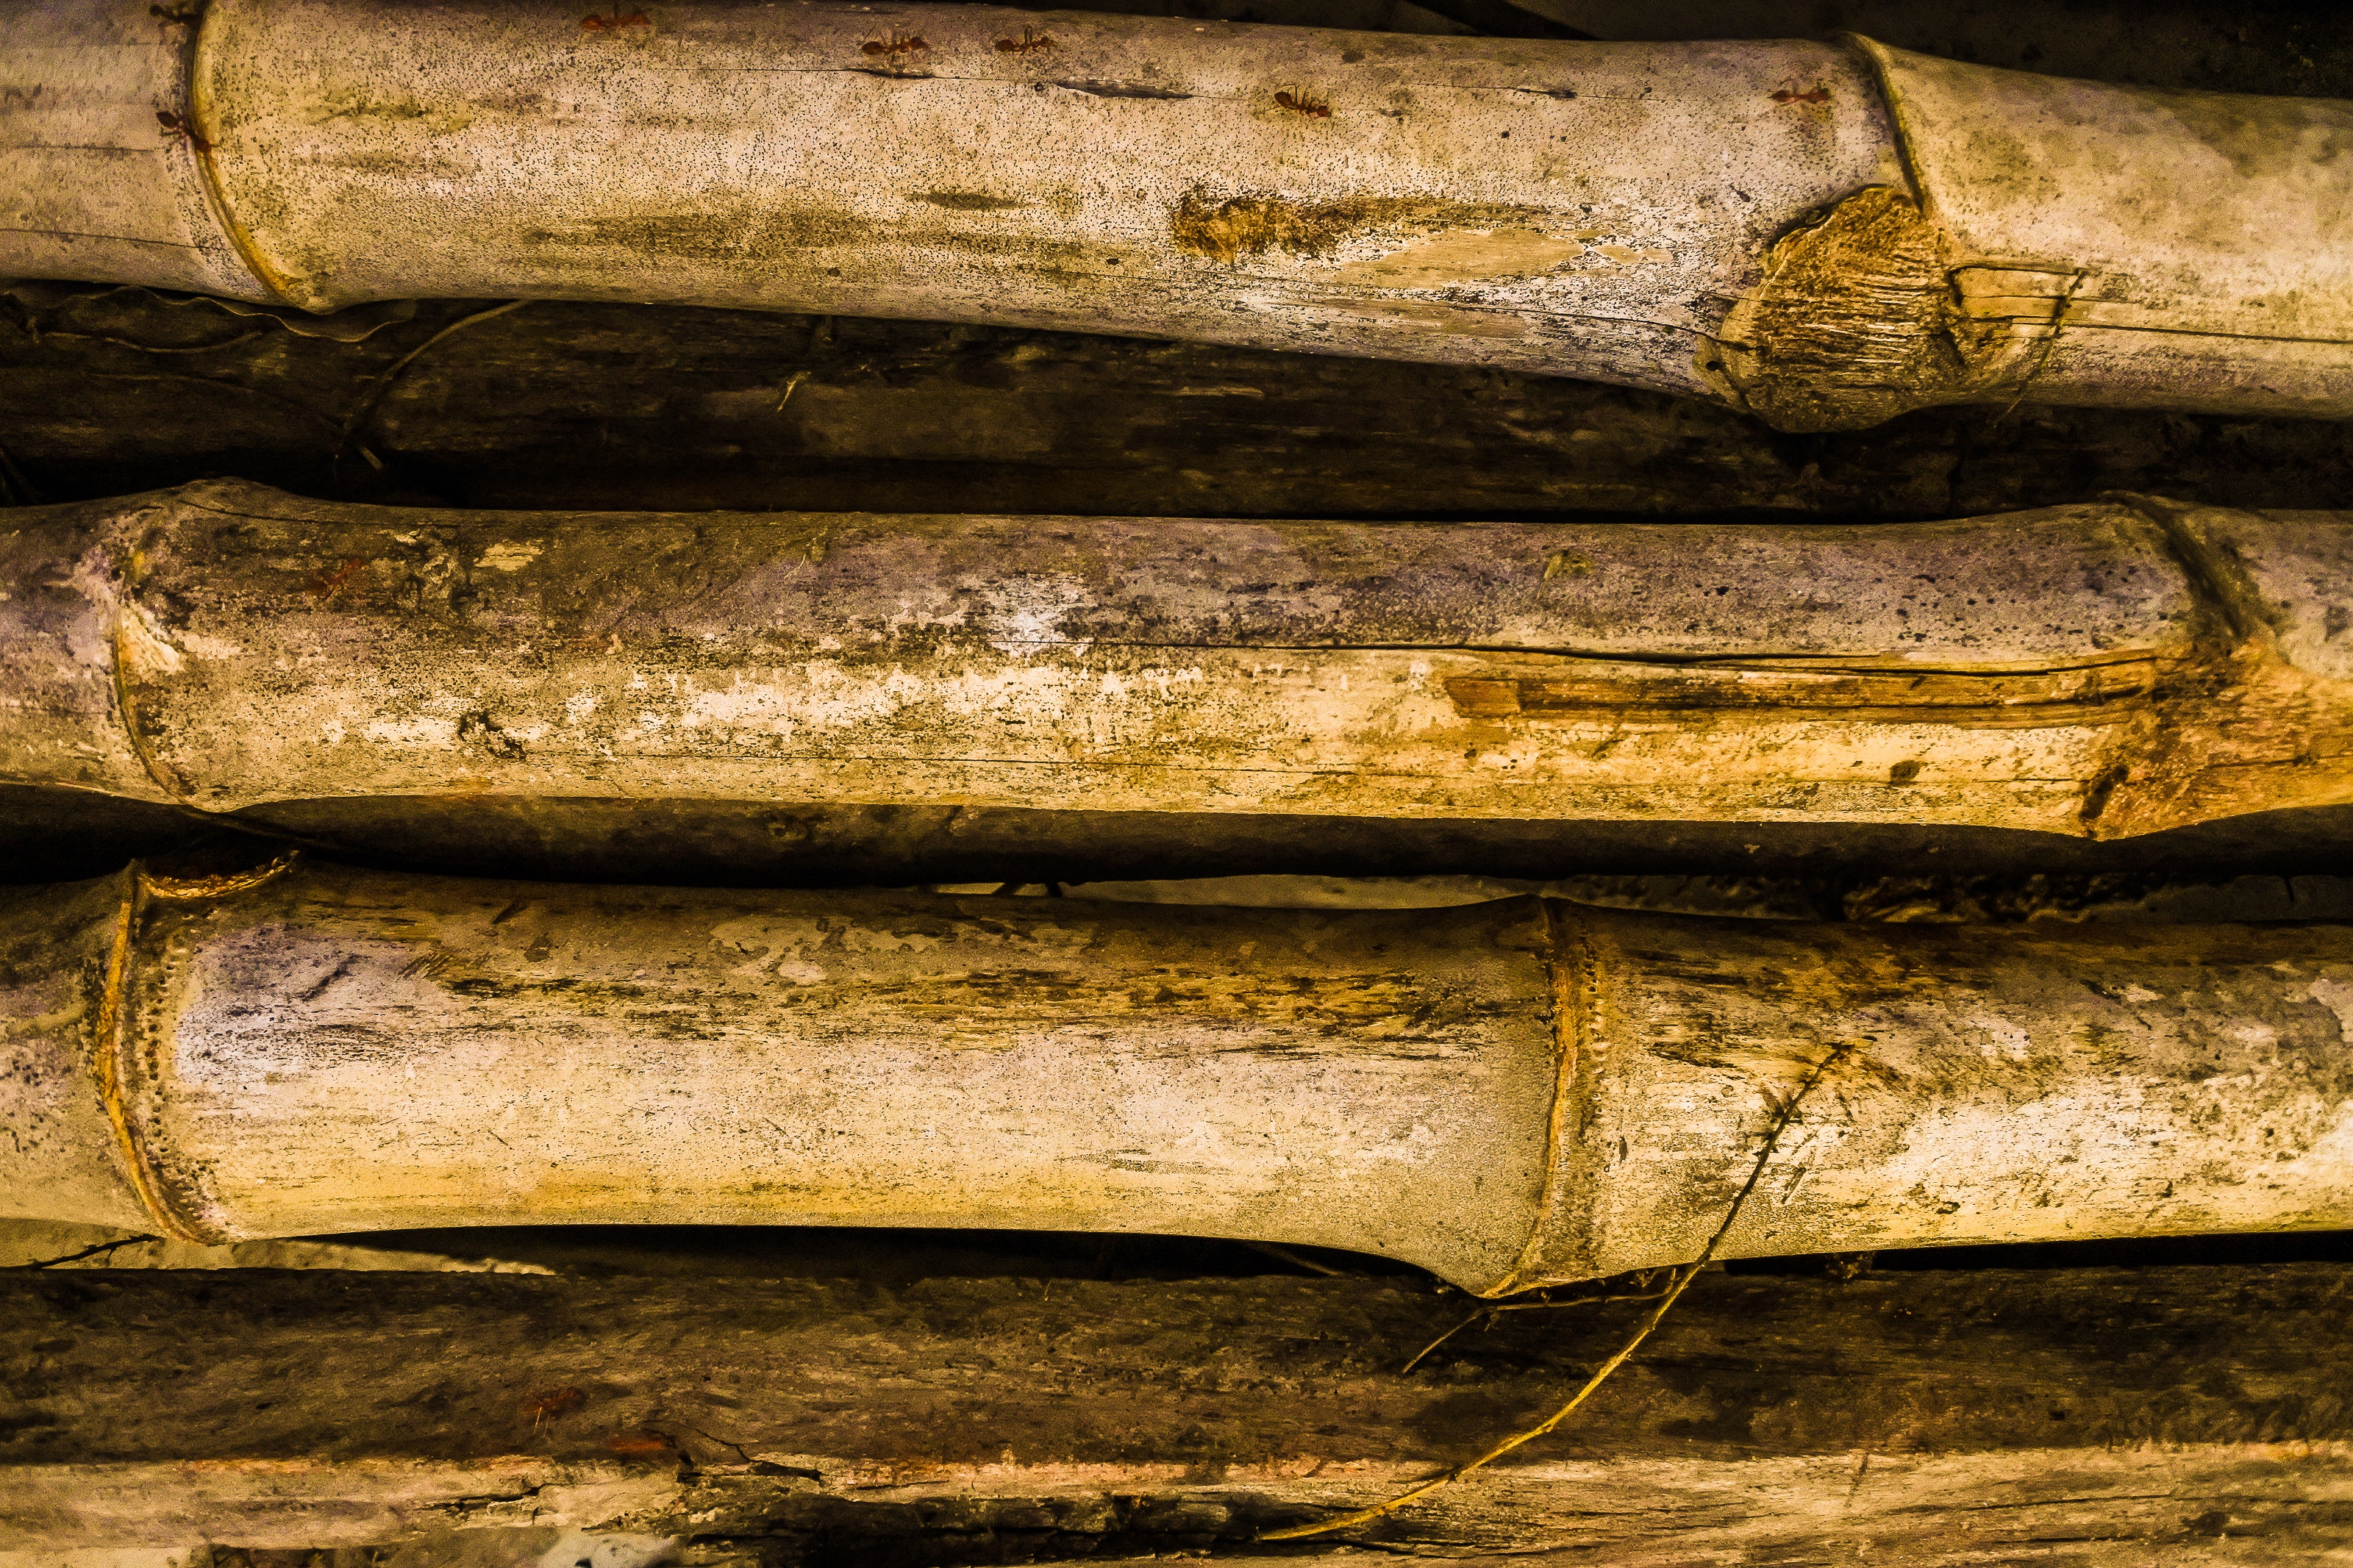 Four Brown Bamboo Grasses, Surface, Texture, Rustic, Rough, HQ Photo